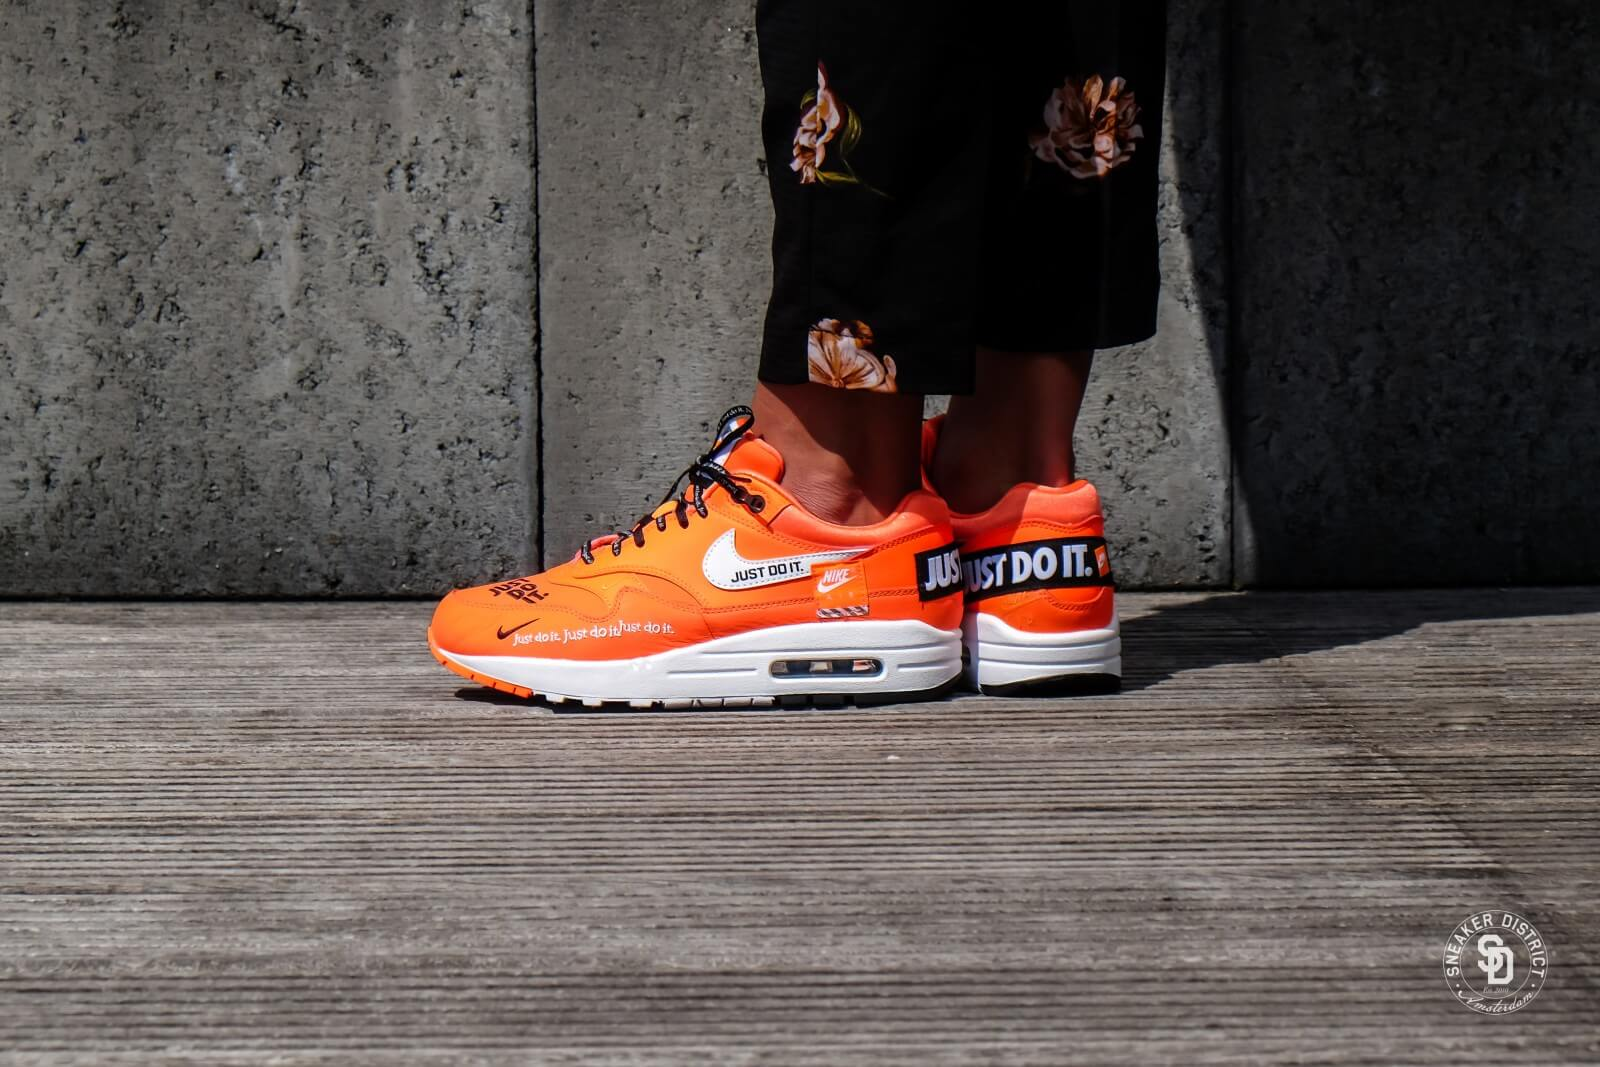 low priced d4810 f7fcf ... question paper trein zwolle amsterdam jim mason wood gasifier Nike bang  dat ik longkanker heb Women s Air Max 1 LUX Just Do It Total Orange White -Black